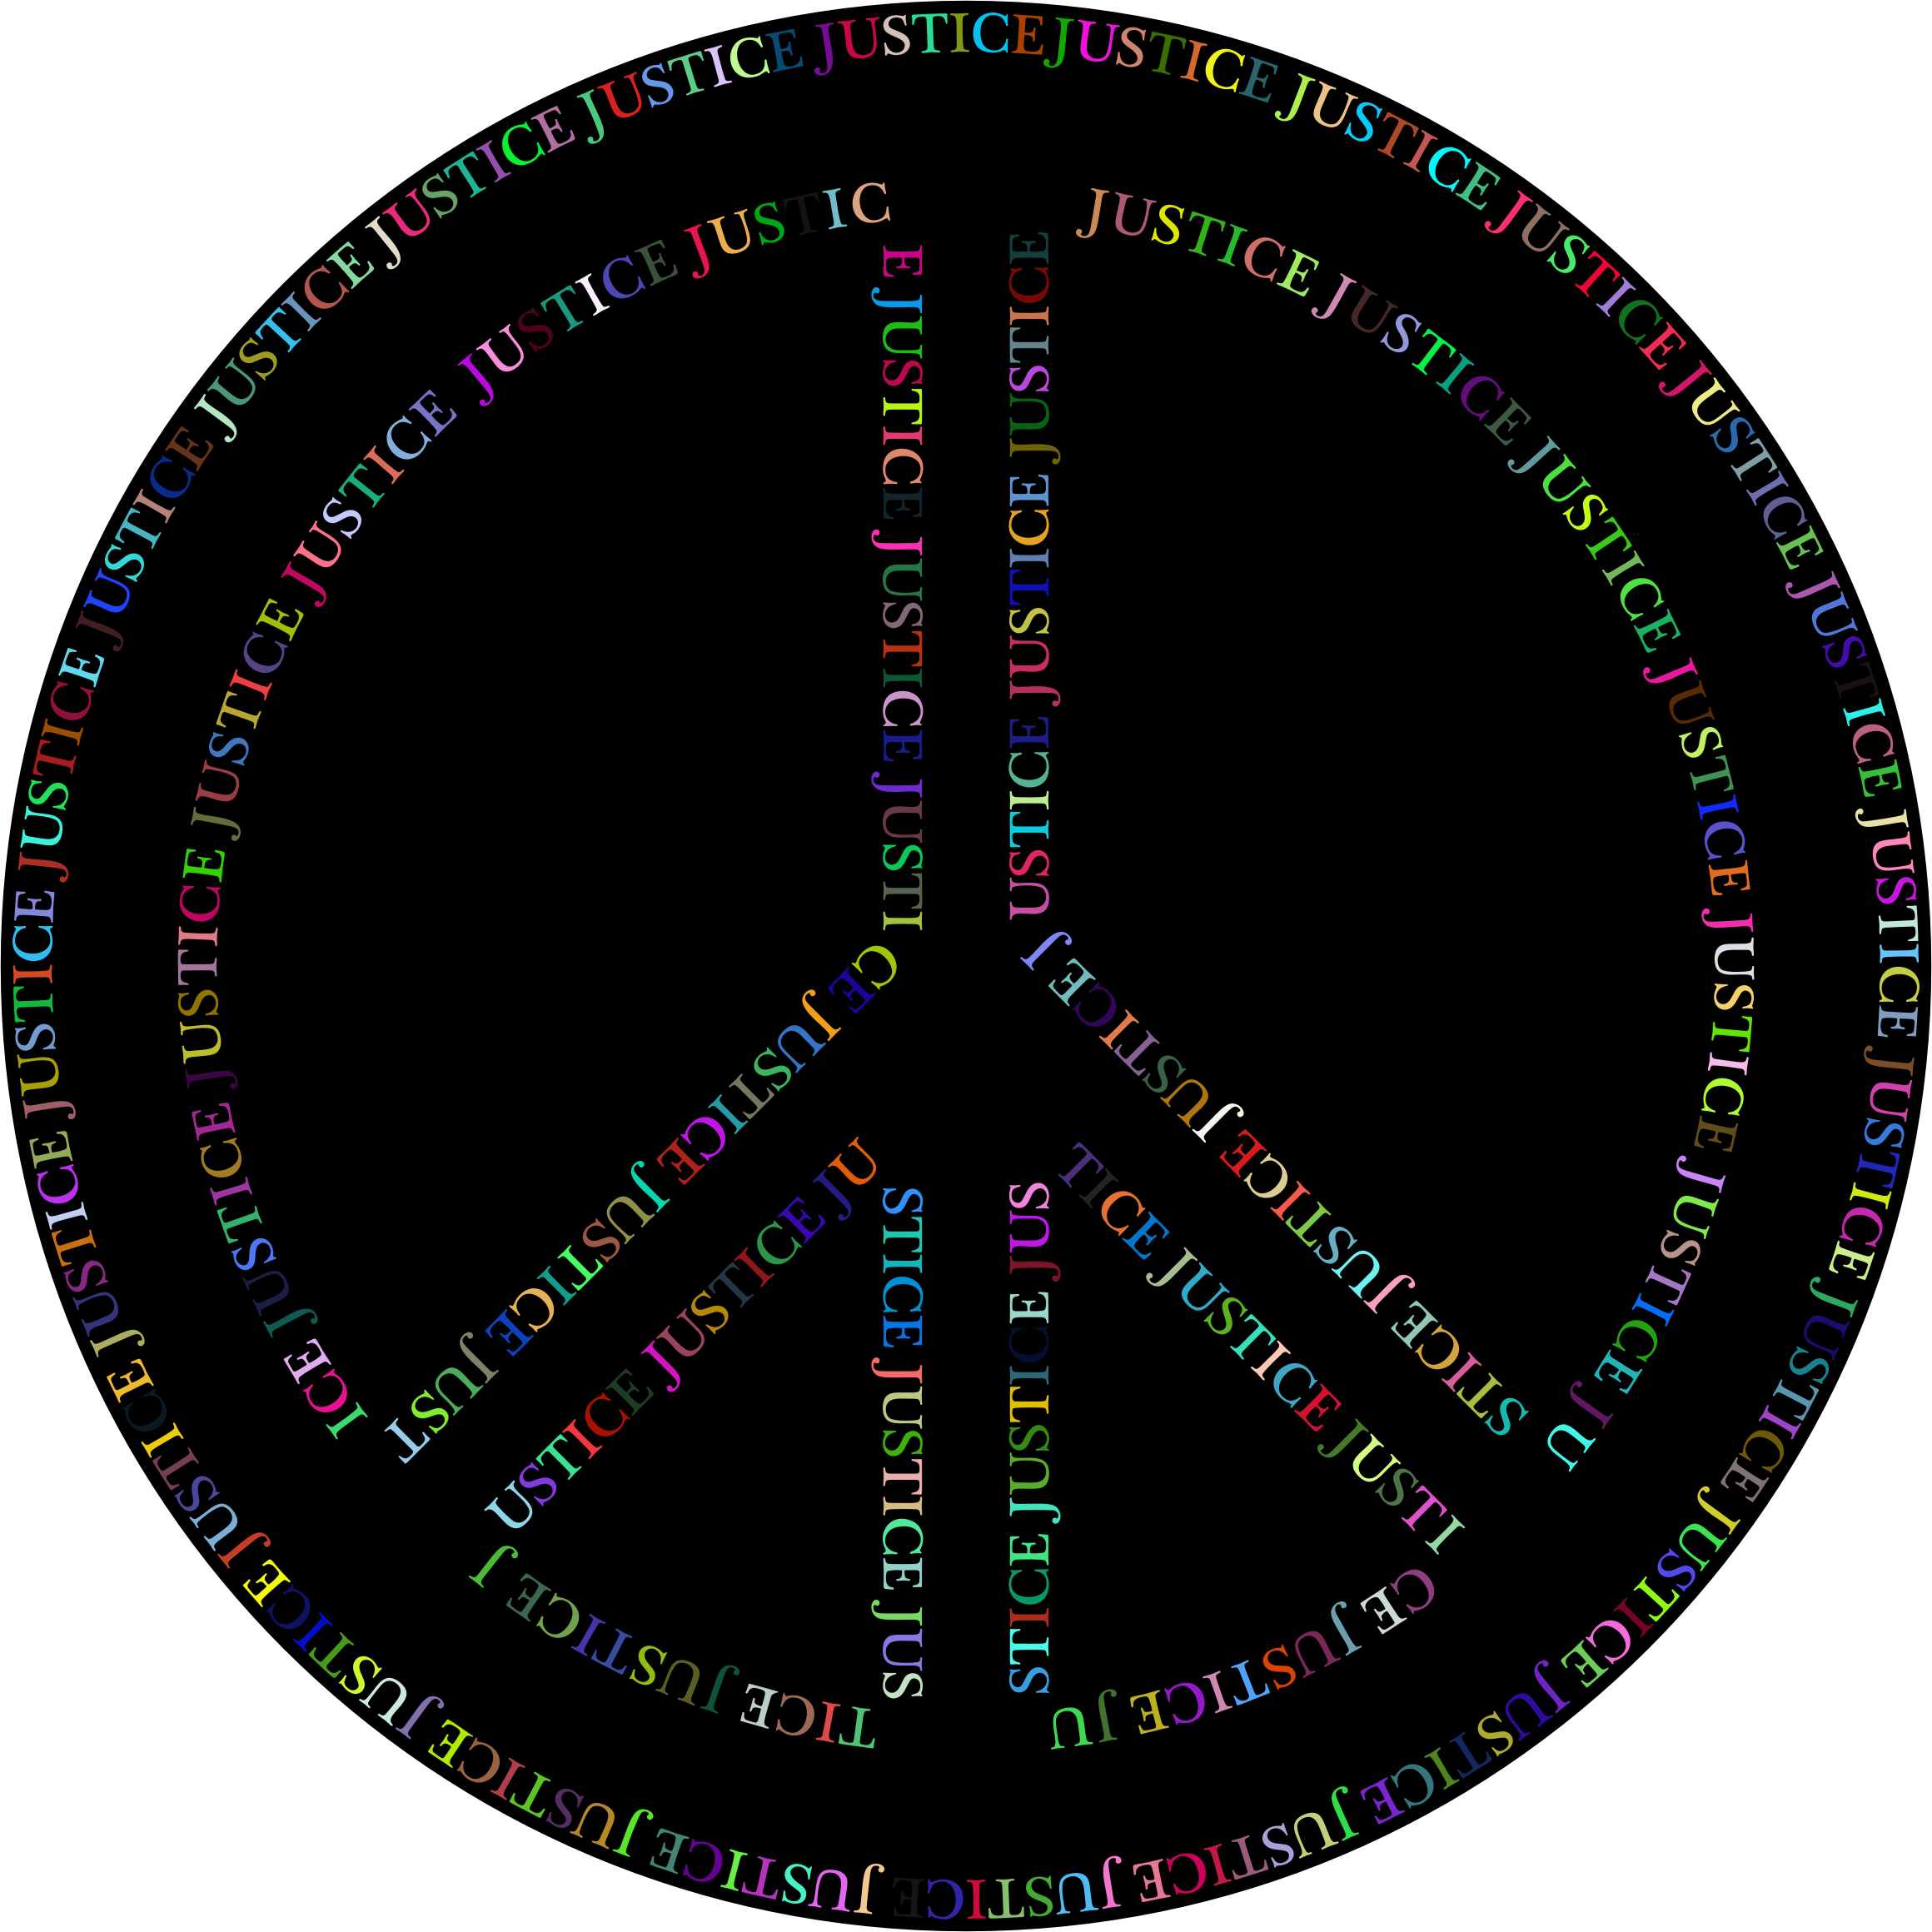 Justice clipart peace. Prismatic symbol icons png